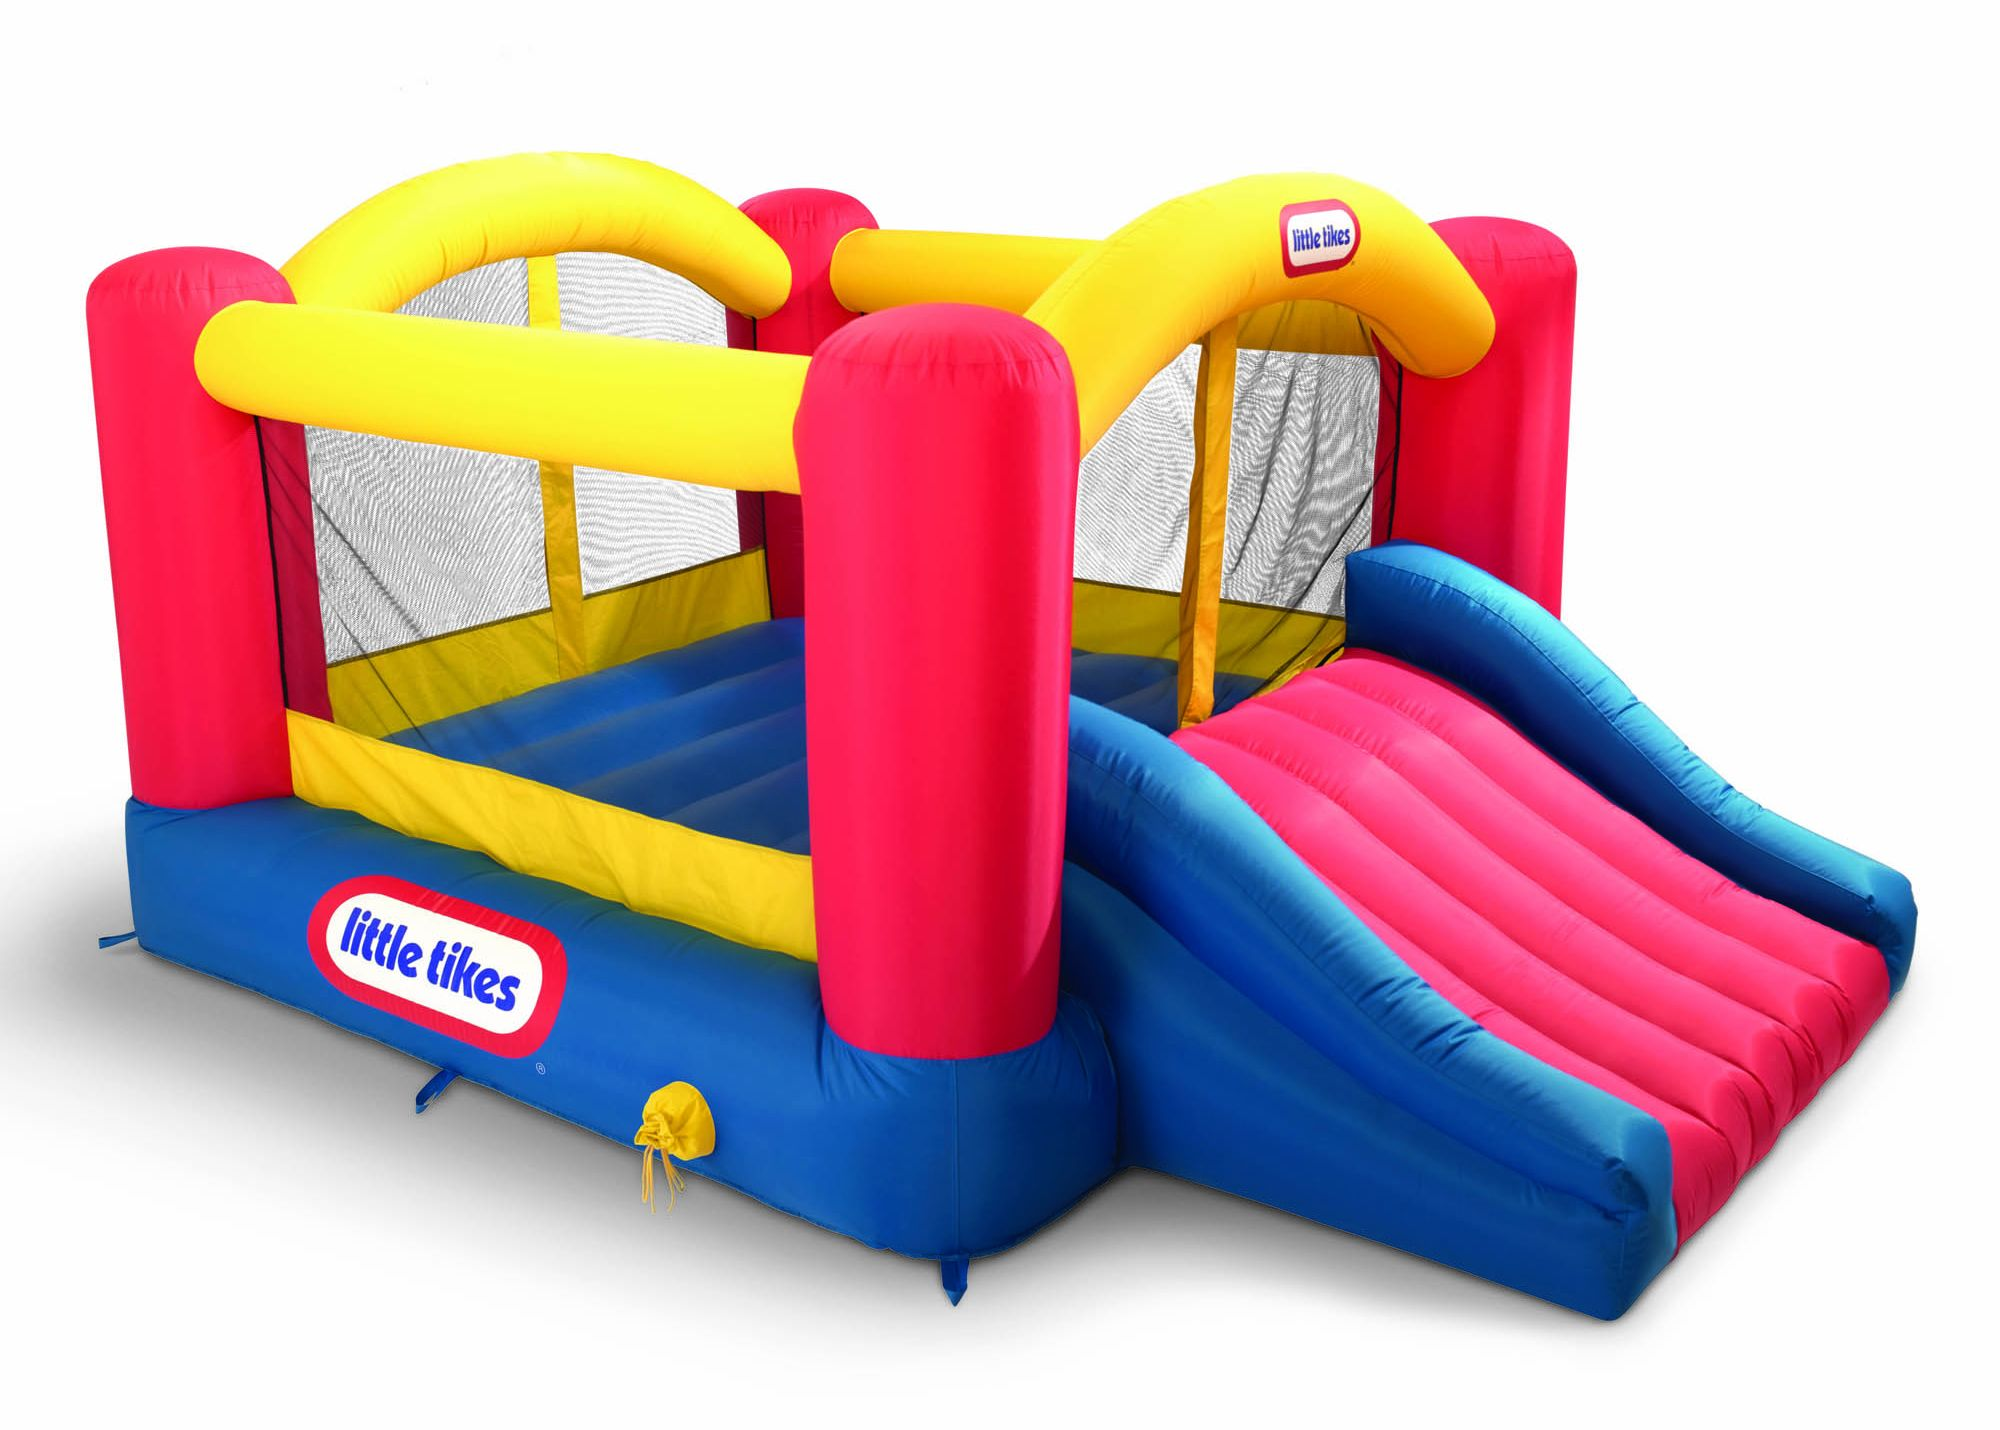 Fancy Little Tikes Bounce House For Play Yard Ideas: Wonderful Little Tikes Bounce House Made Of Caoutchouc With Slide And Curtain For Kids Play Room Ideas